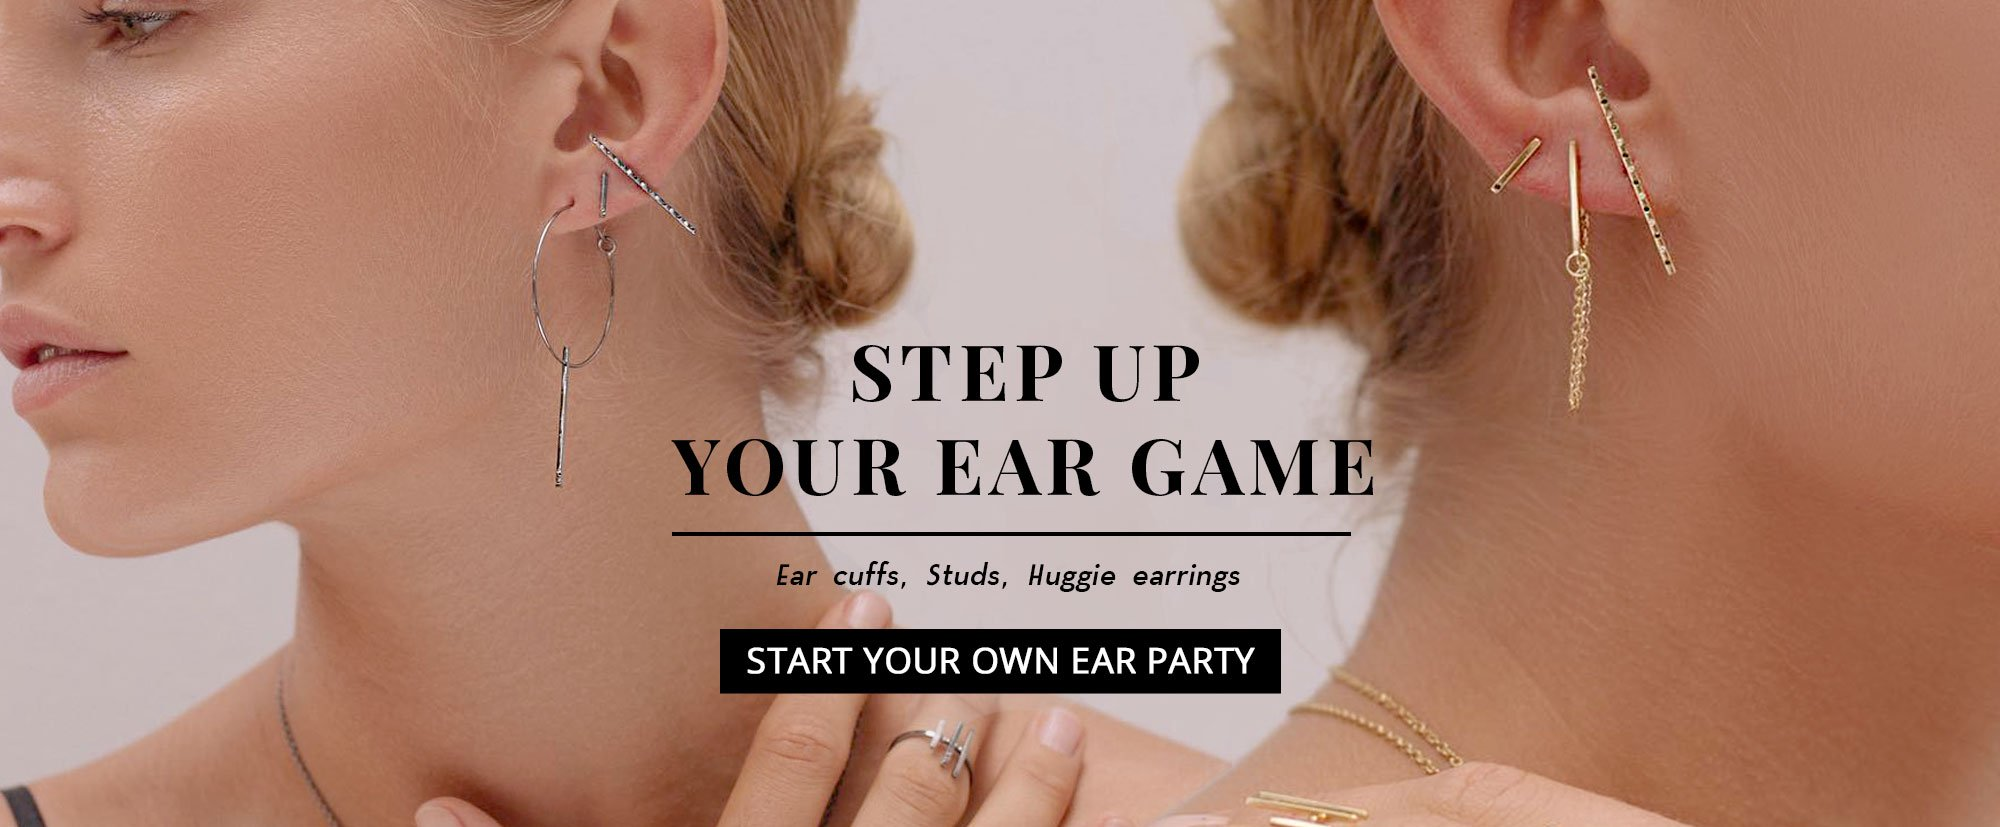 Shop Ear Candy